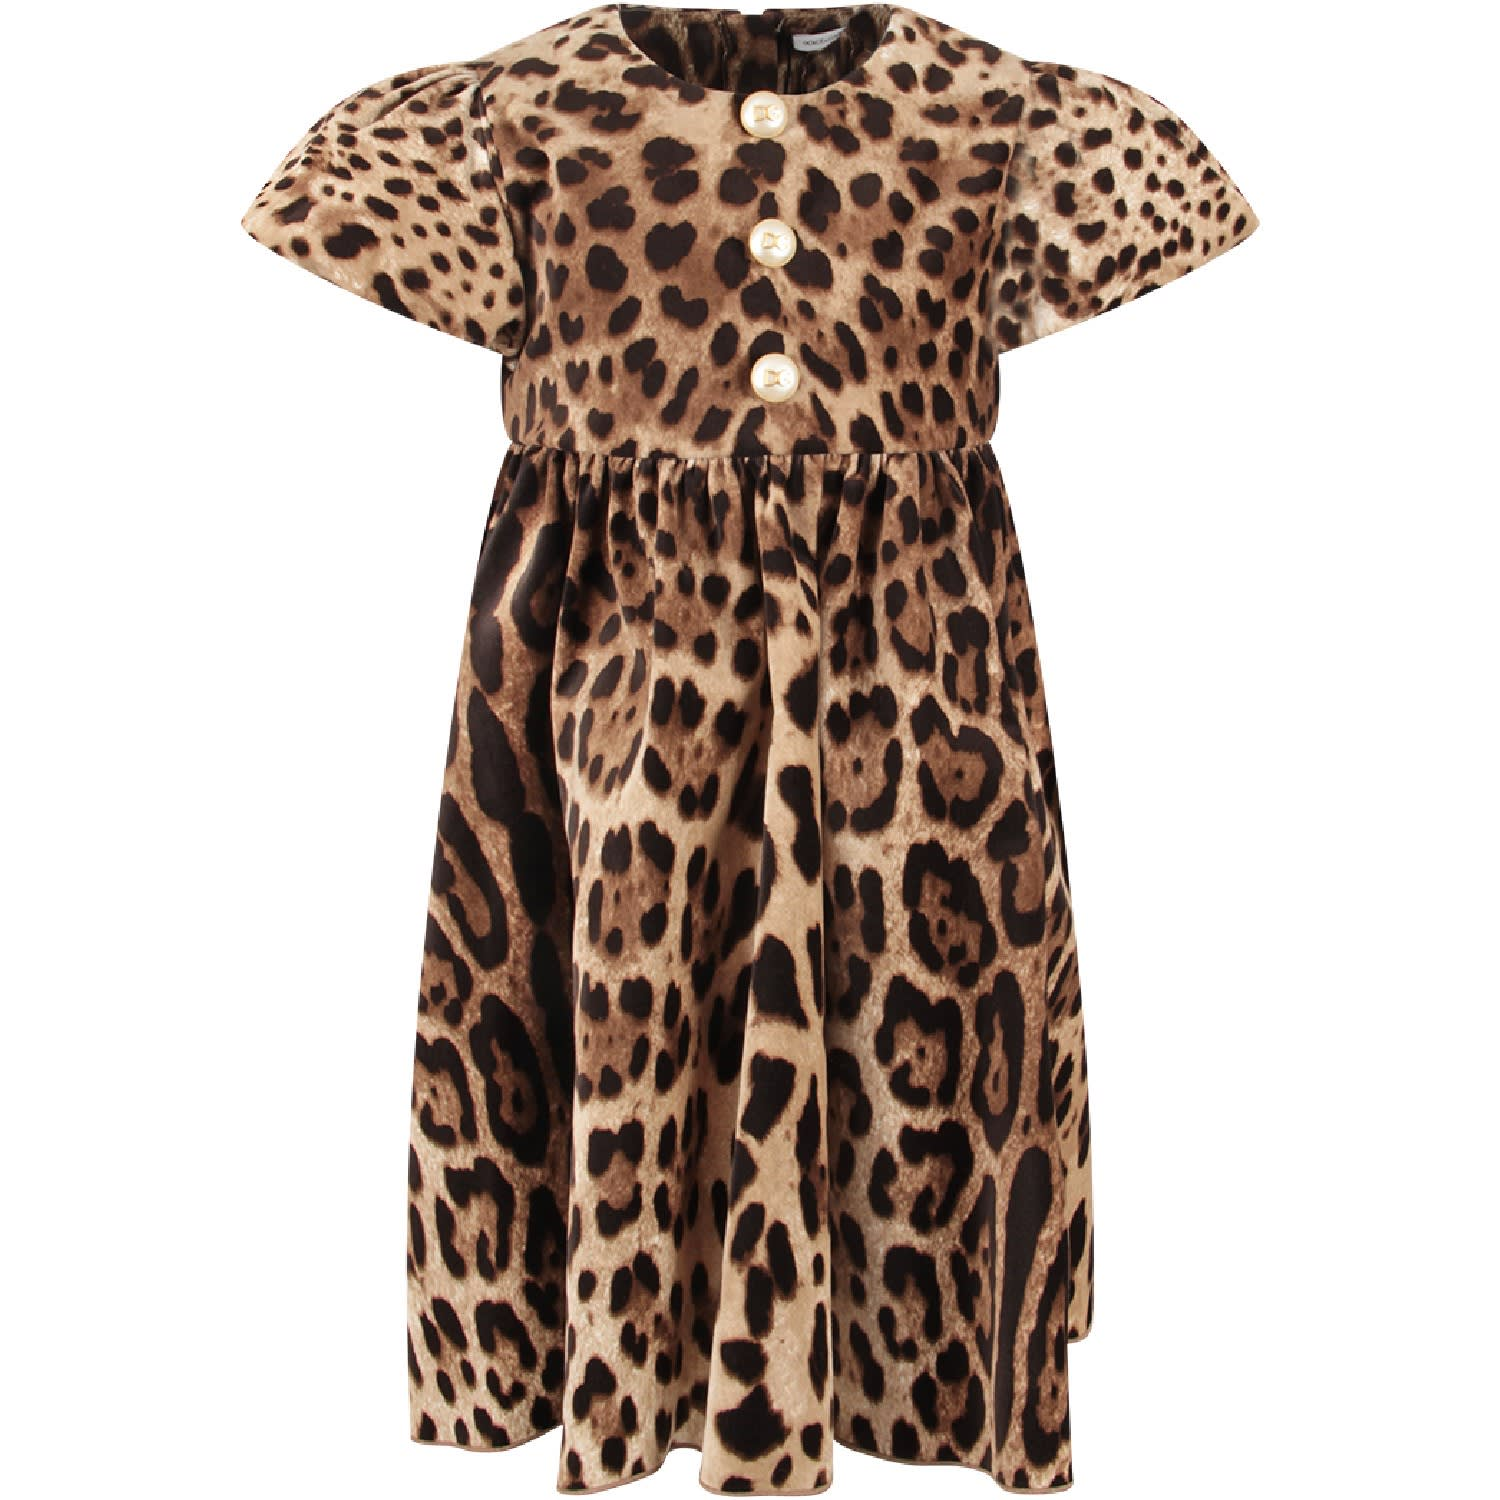 Buy Dolce & Gabbana Brown Girl Dress With Animalier Print online, shop Dolce & Gabbana with free shipping